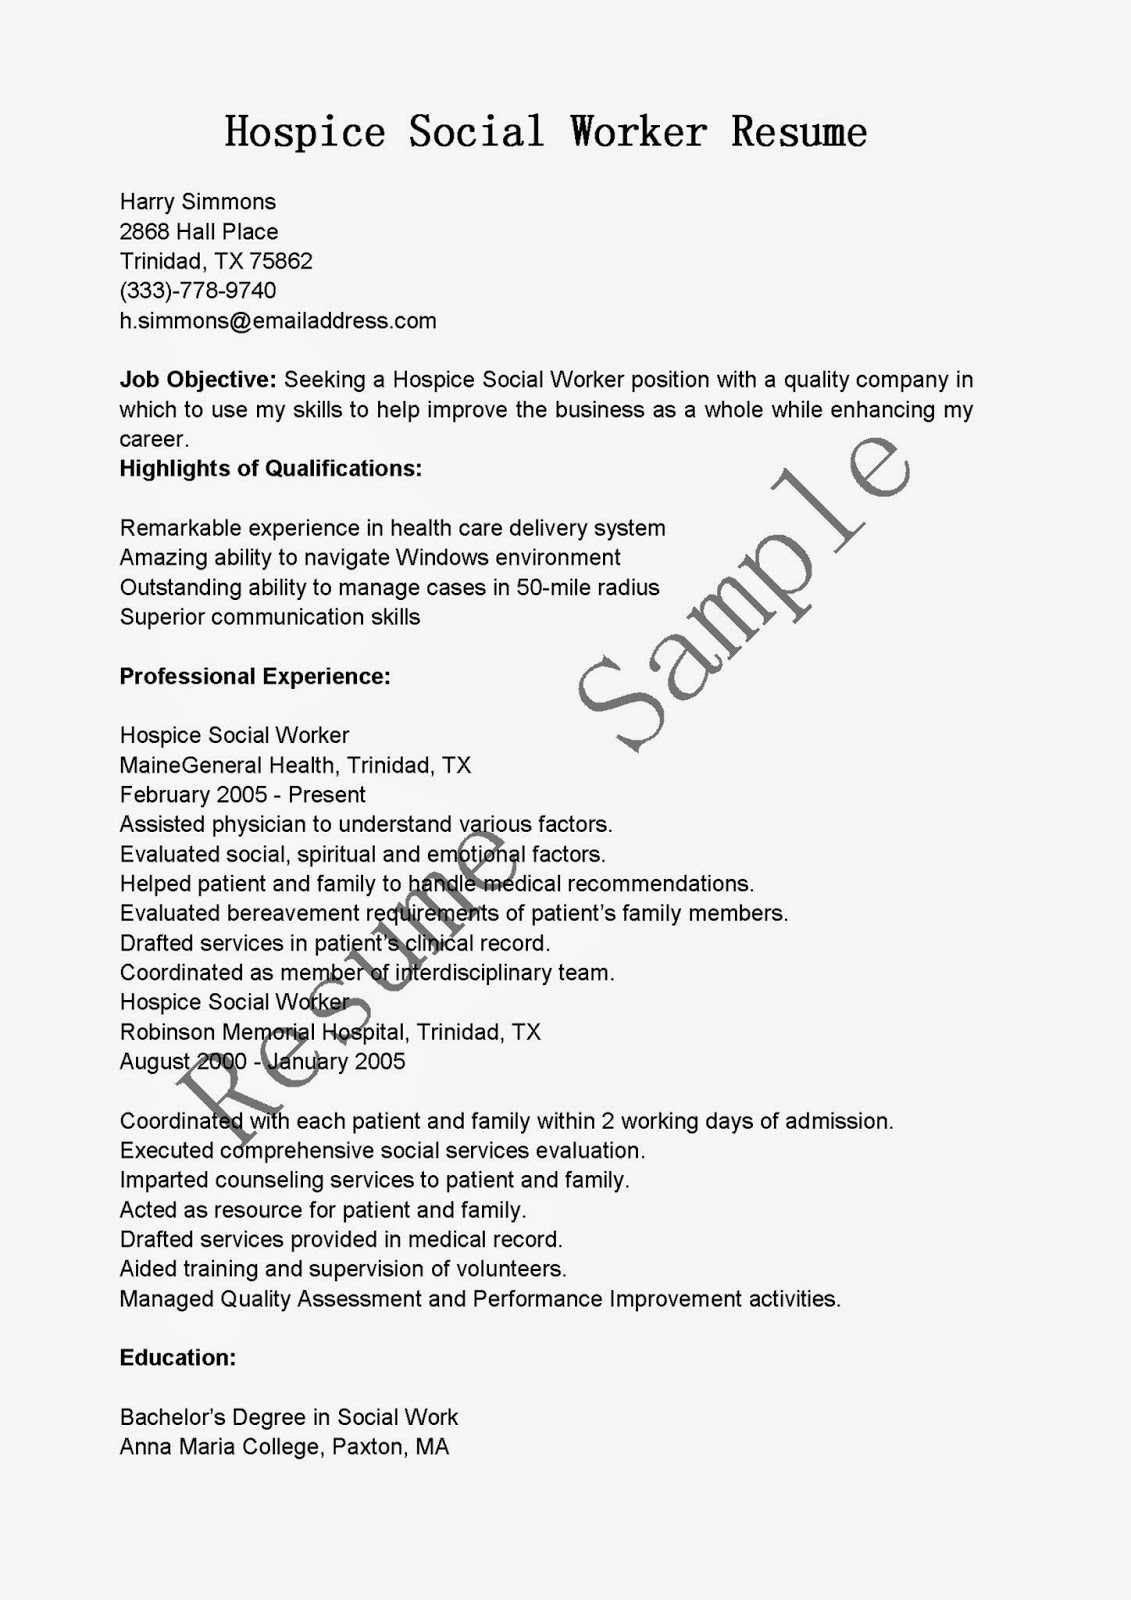 sle resume for geriatric residential counselor